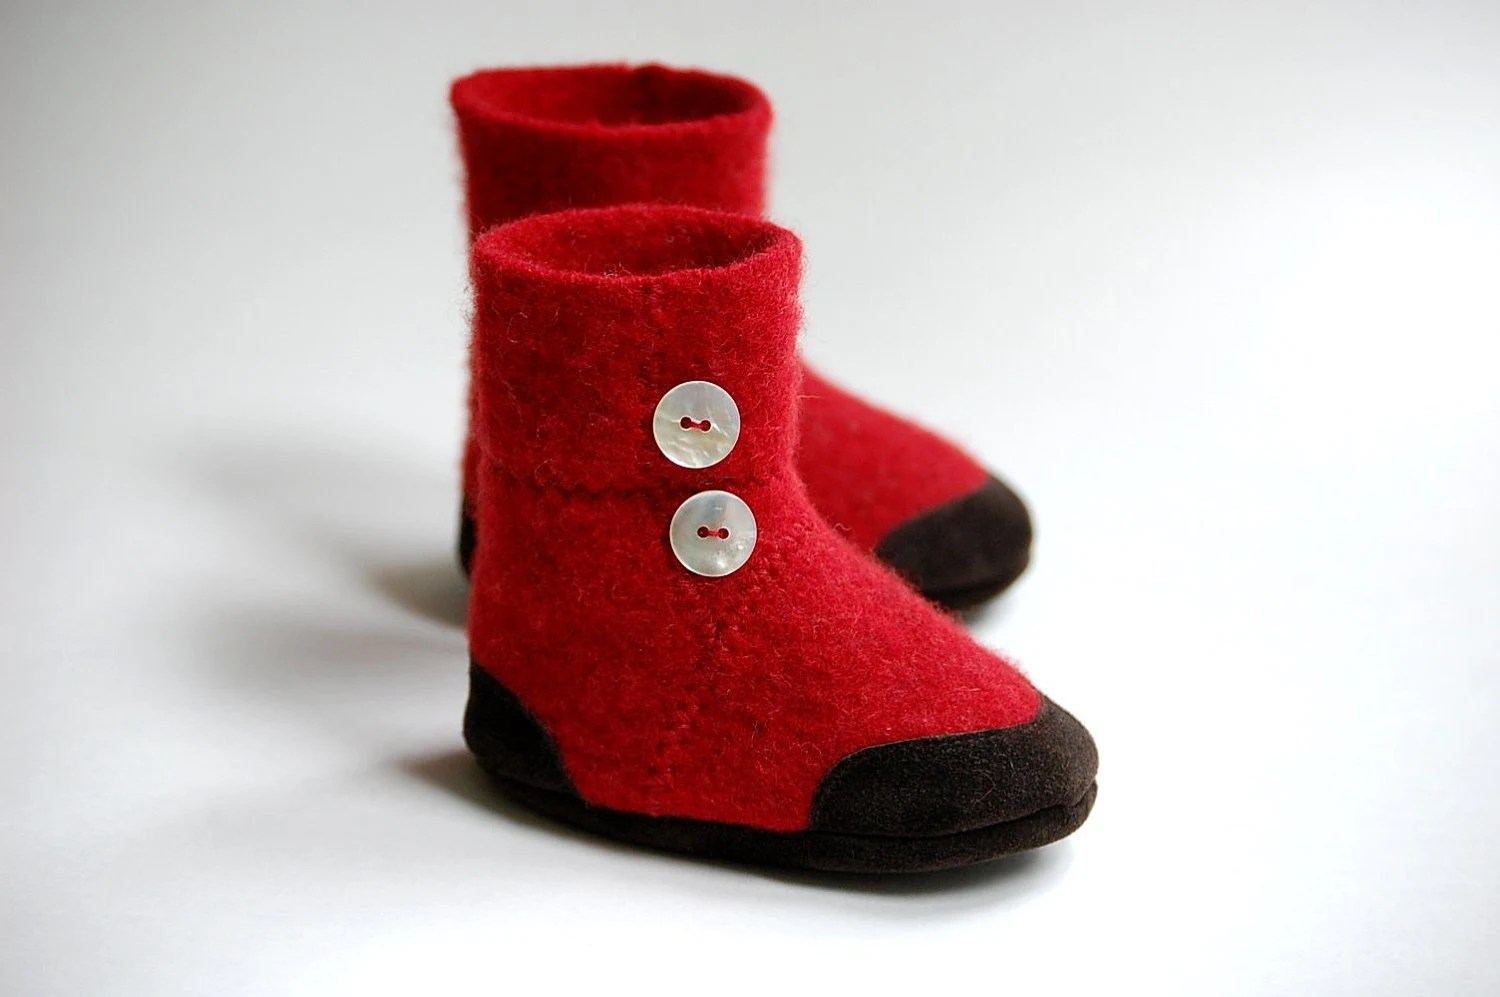 Lambswool Slippers from Upcycled Sweater, Baby sizes 0-12, 6-18, 12-24 months, Dress Up